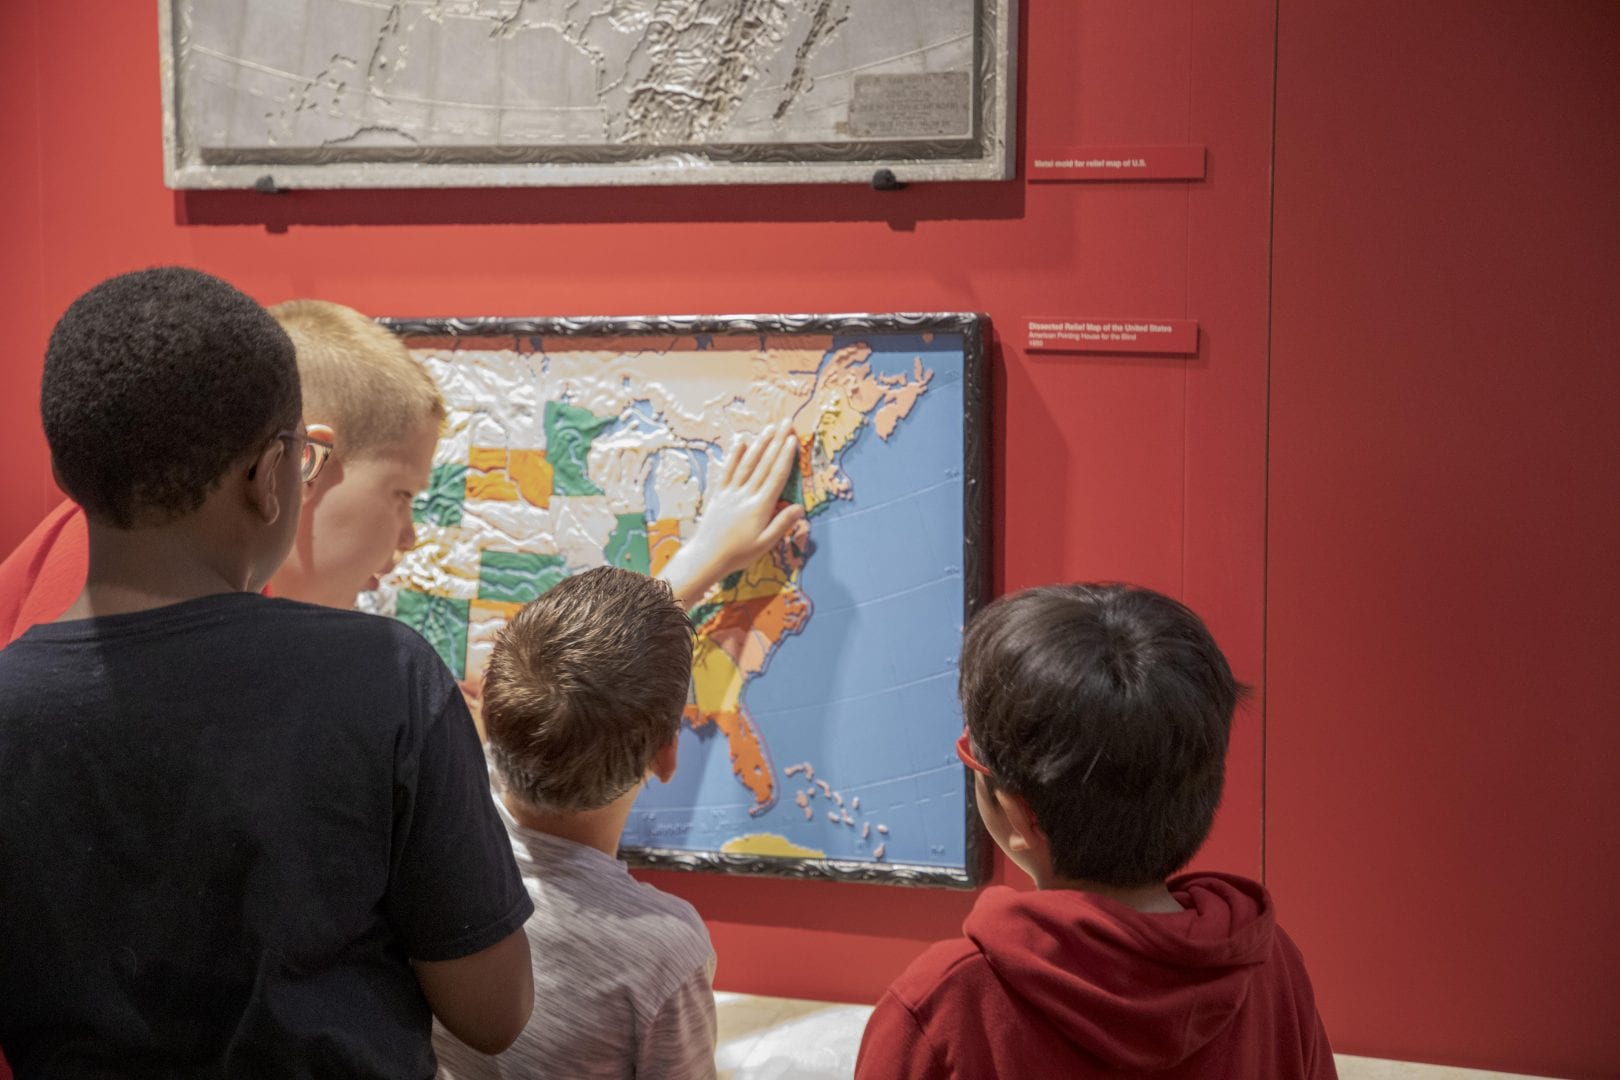 kids looking at and feeling a tactile map of the US in the APH Museum